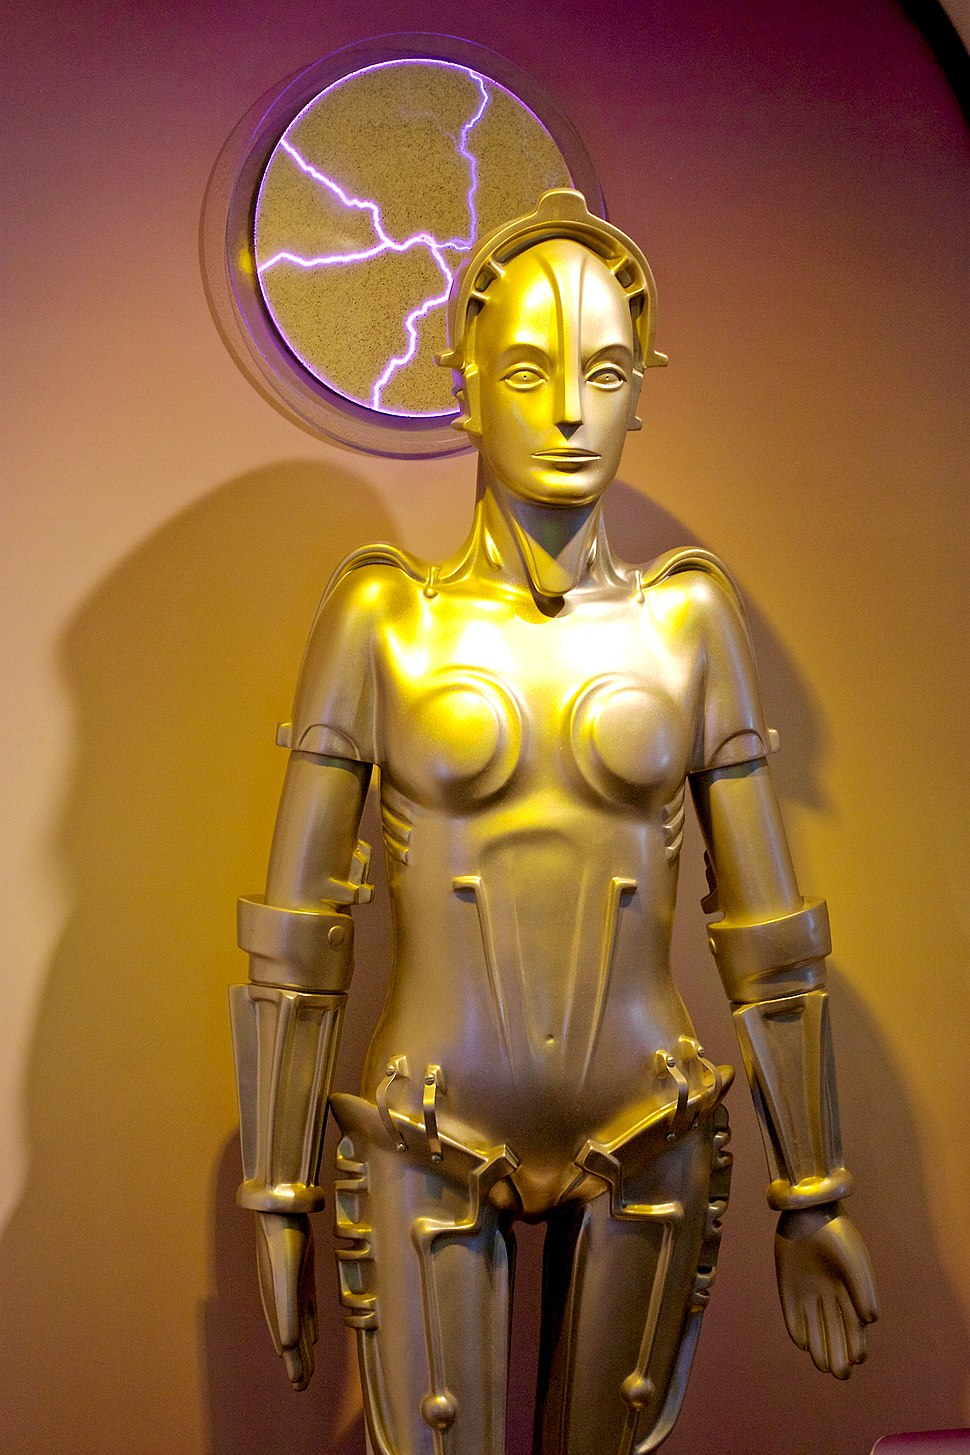 Maria from the film Metropolis, on display at the Robot Hall of Fame